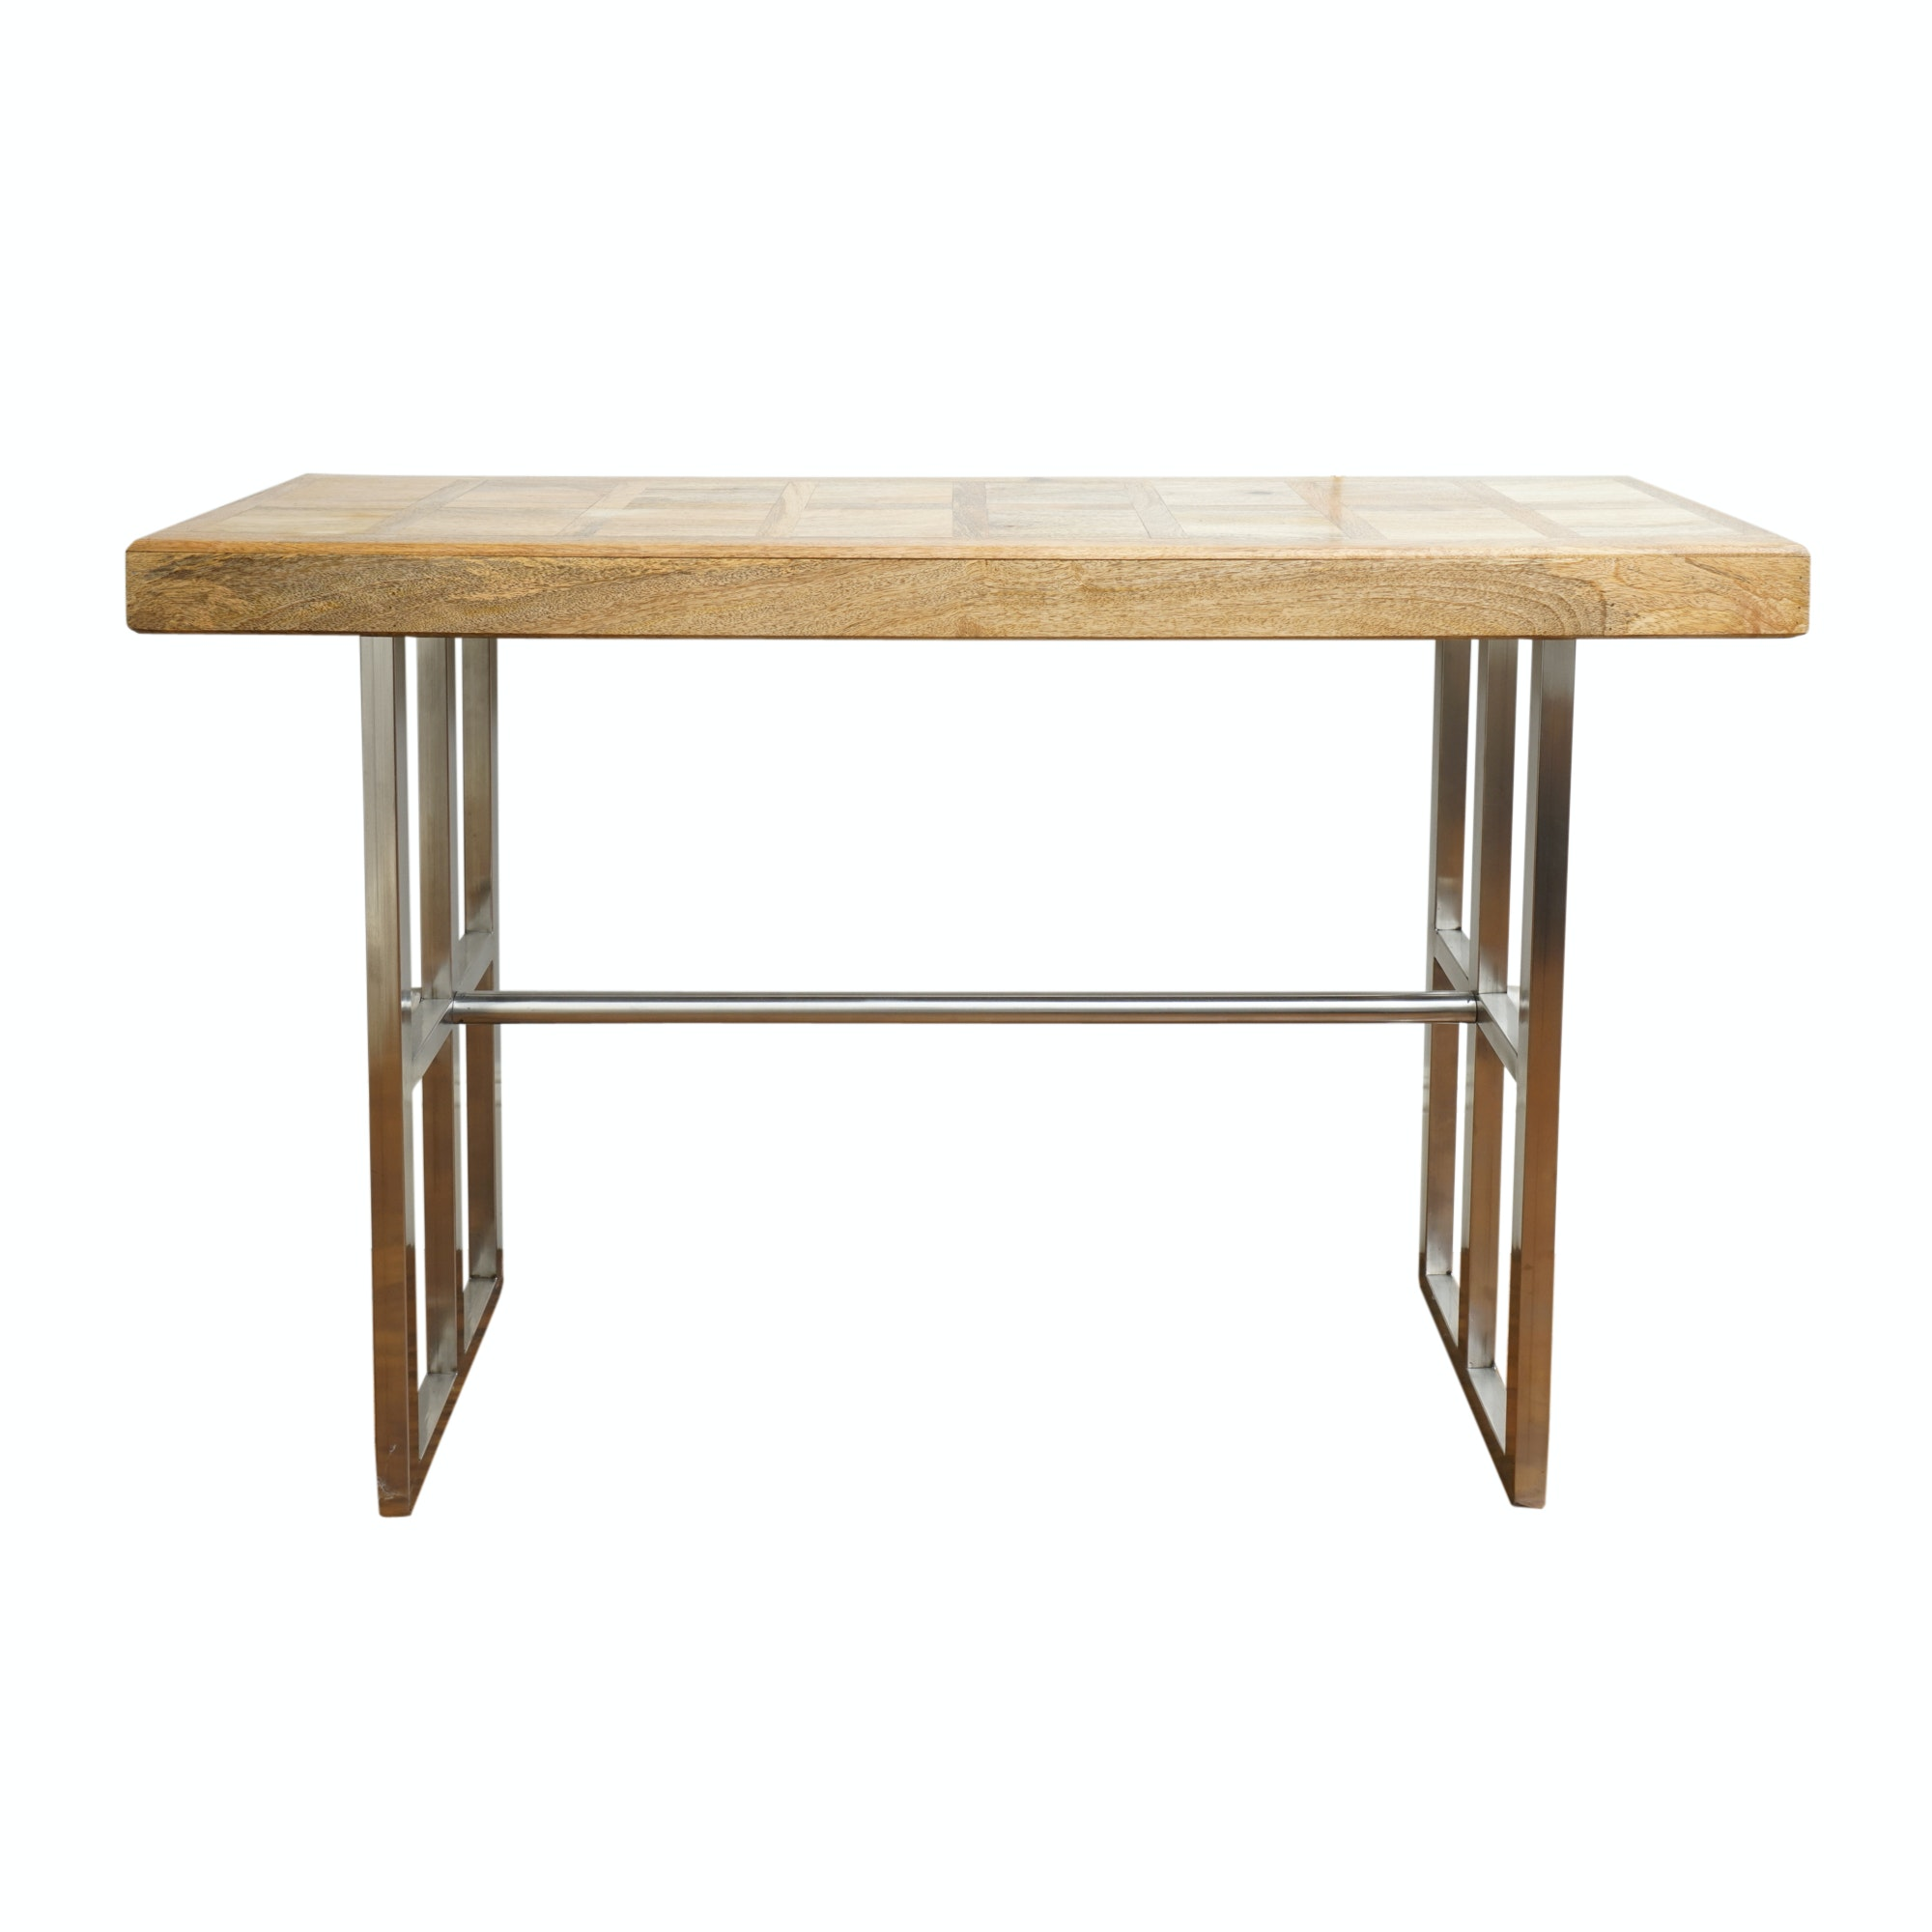 Contemporary Wood and Metal Console Table by Dileep Industries